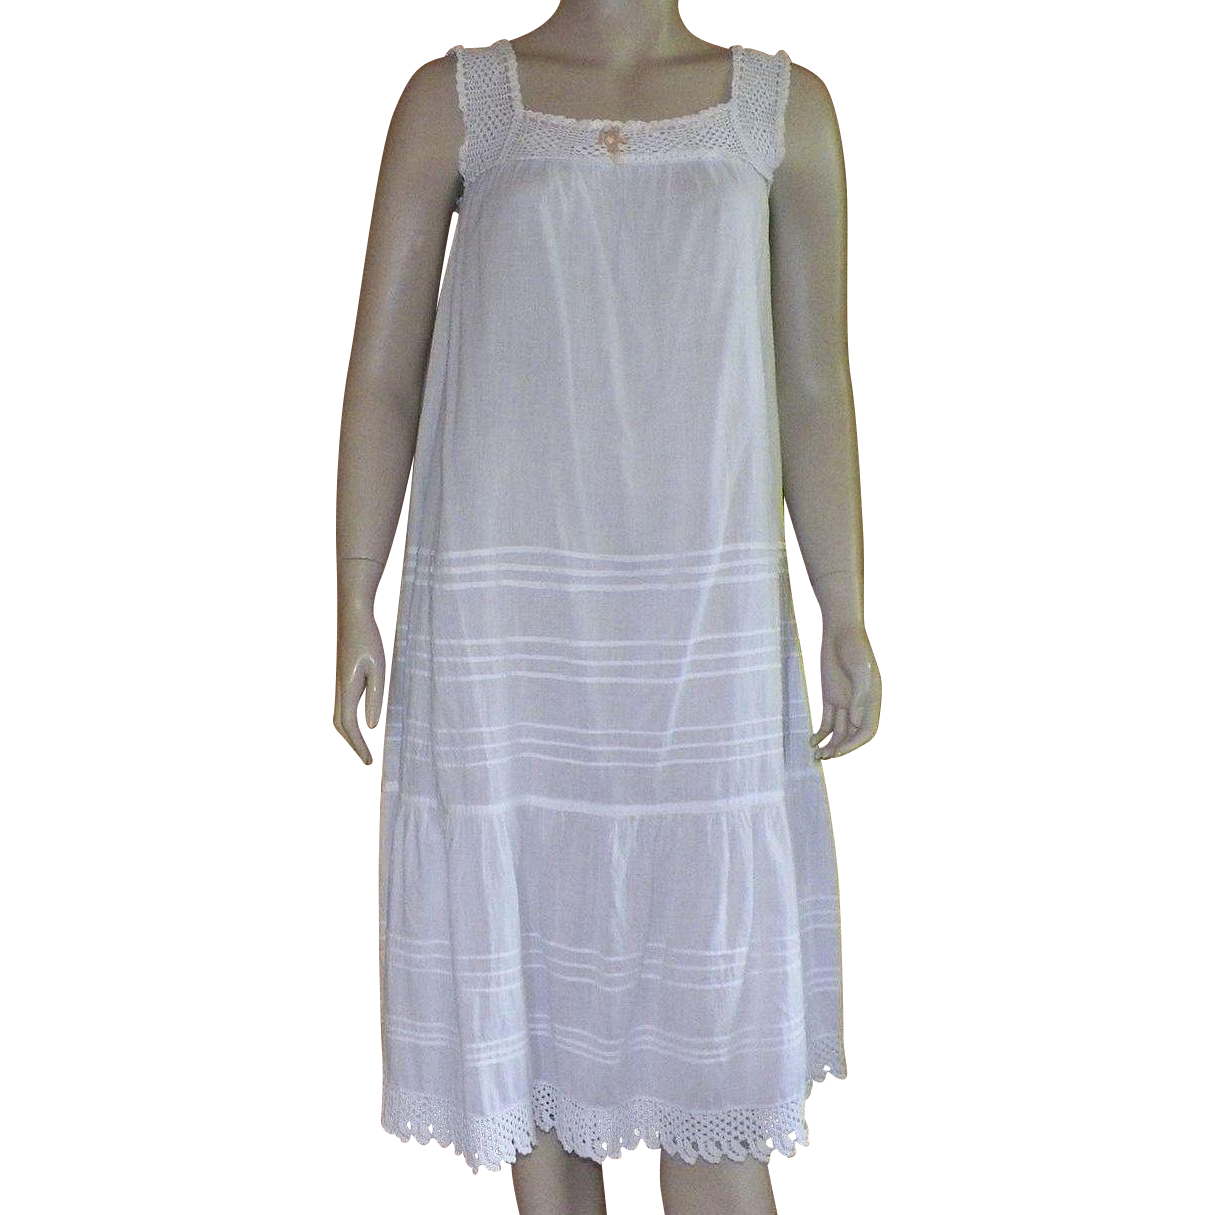 Victorian White Sleeveless Cotton Nightgown With Crocheted Details